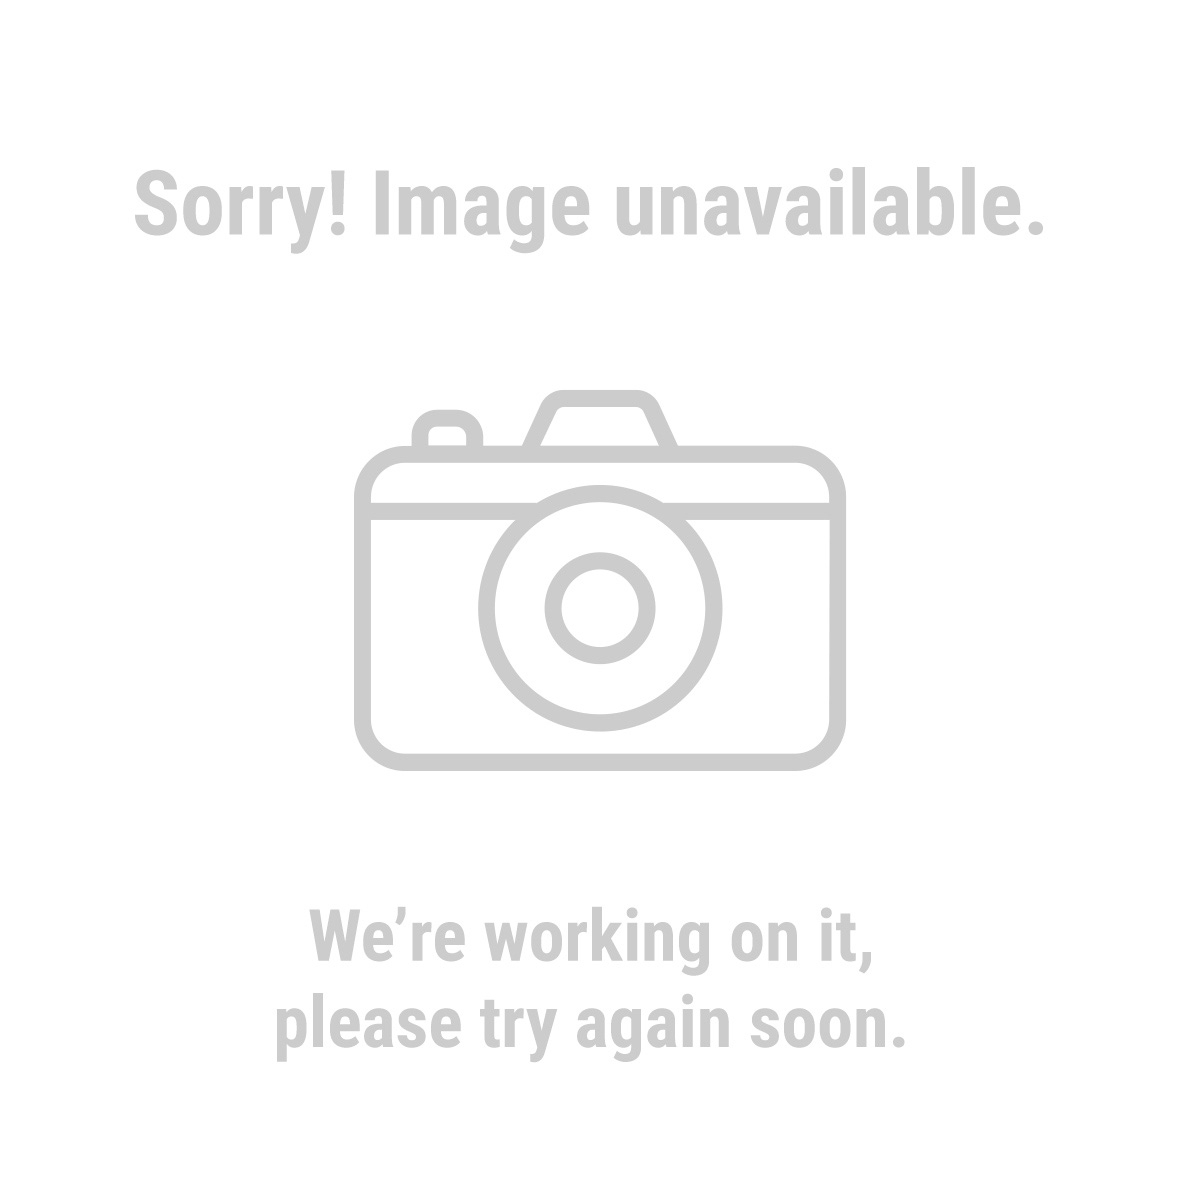 U.S. General® 69321 Magnetic Paper Towel Holder